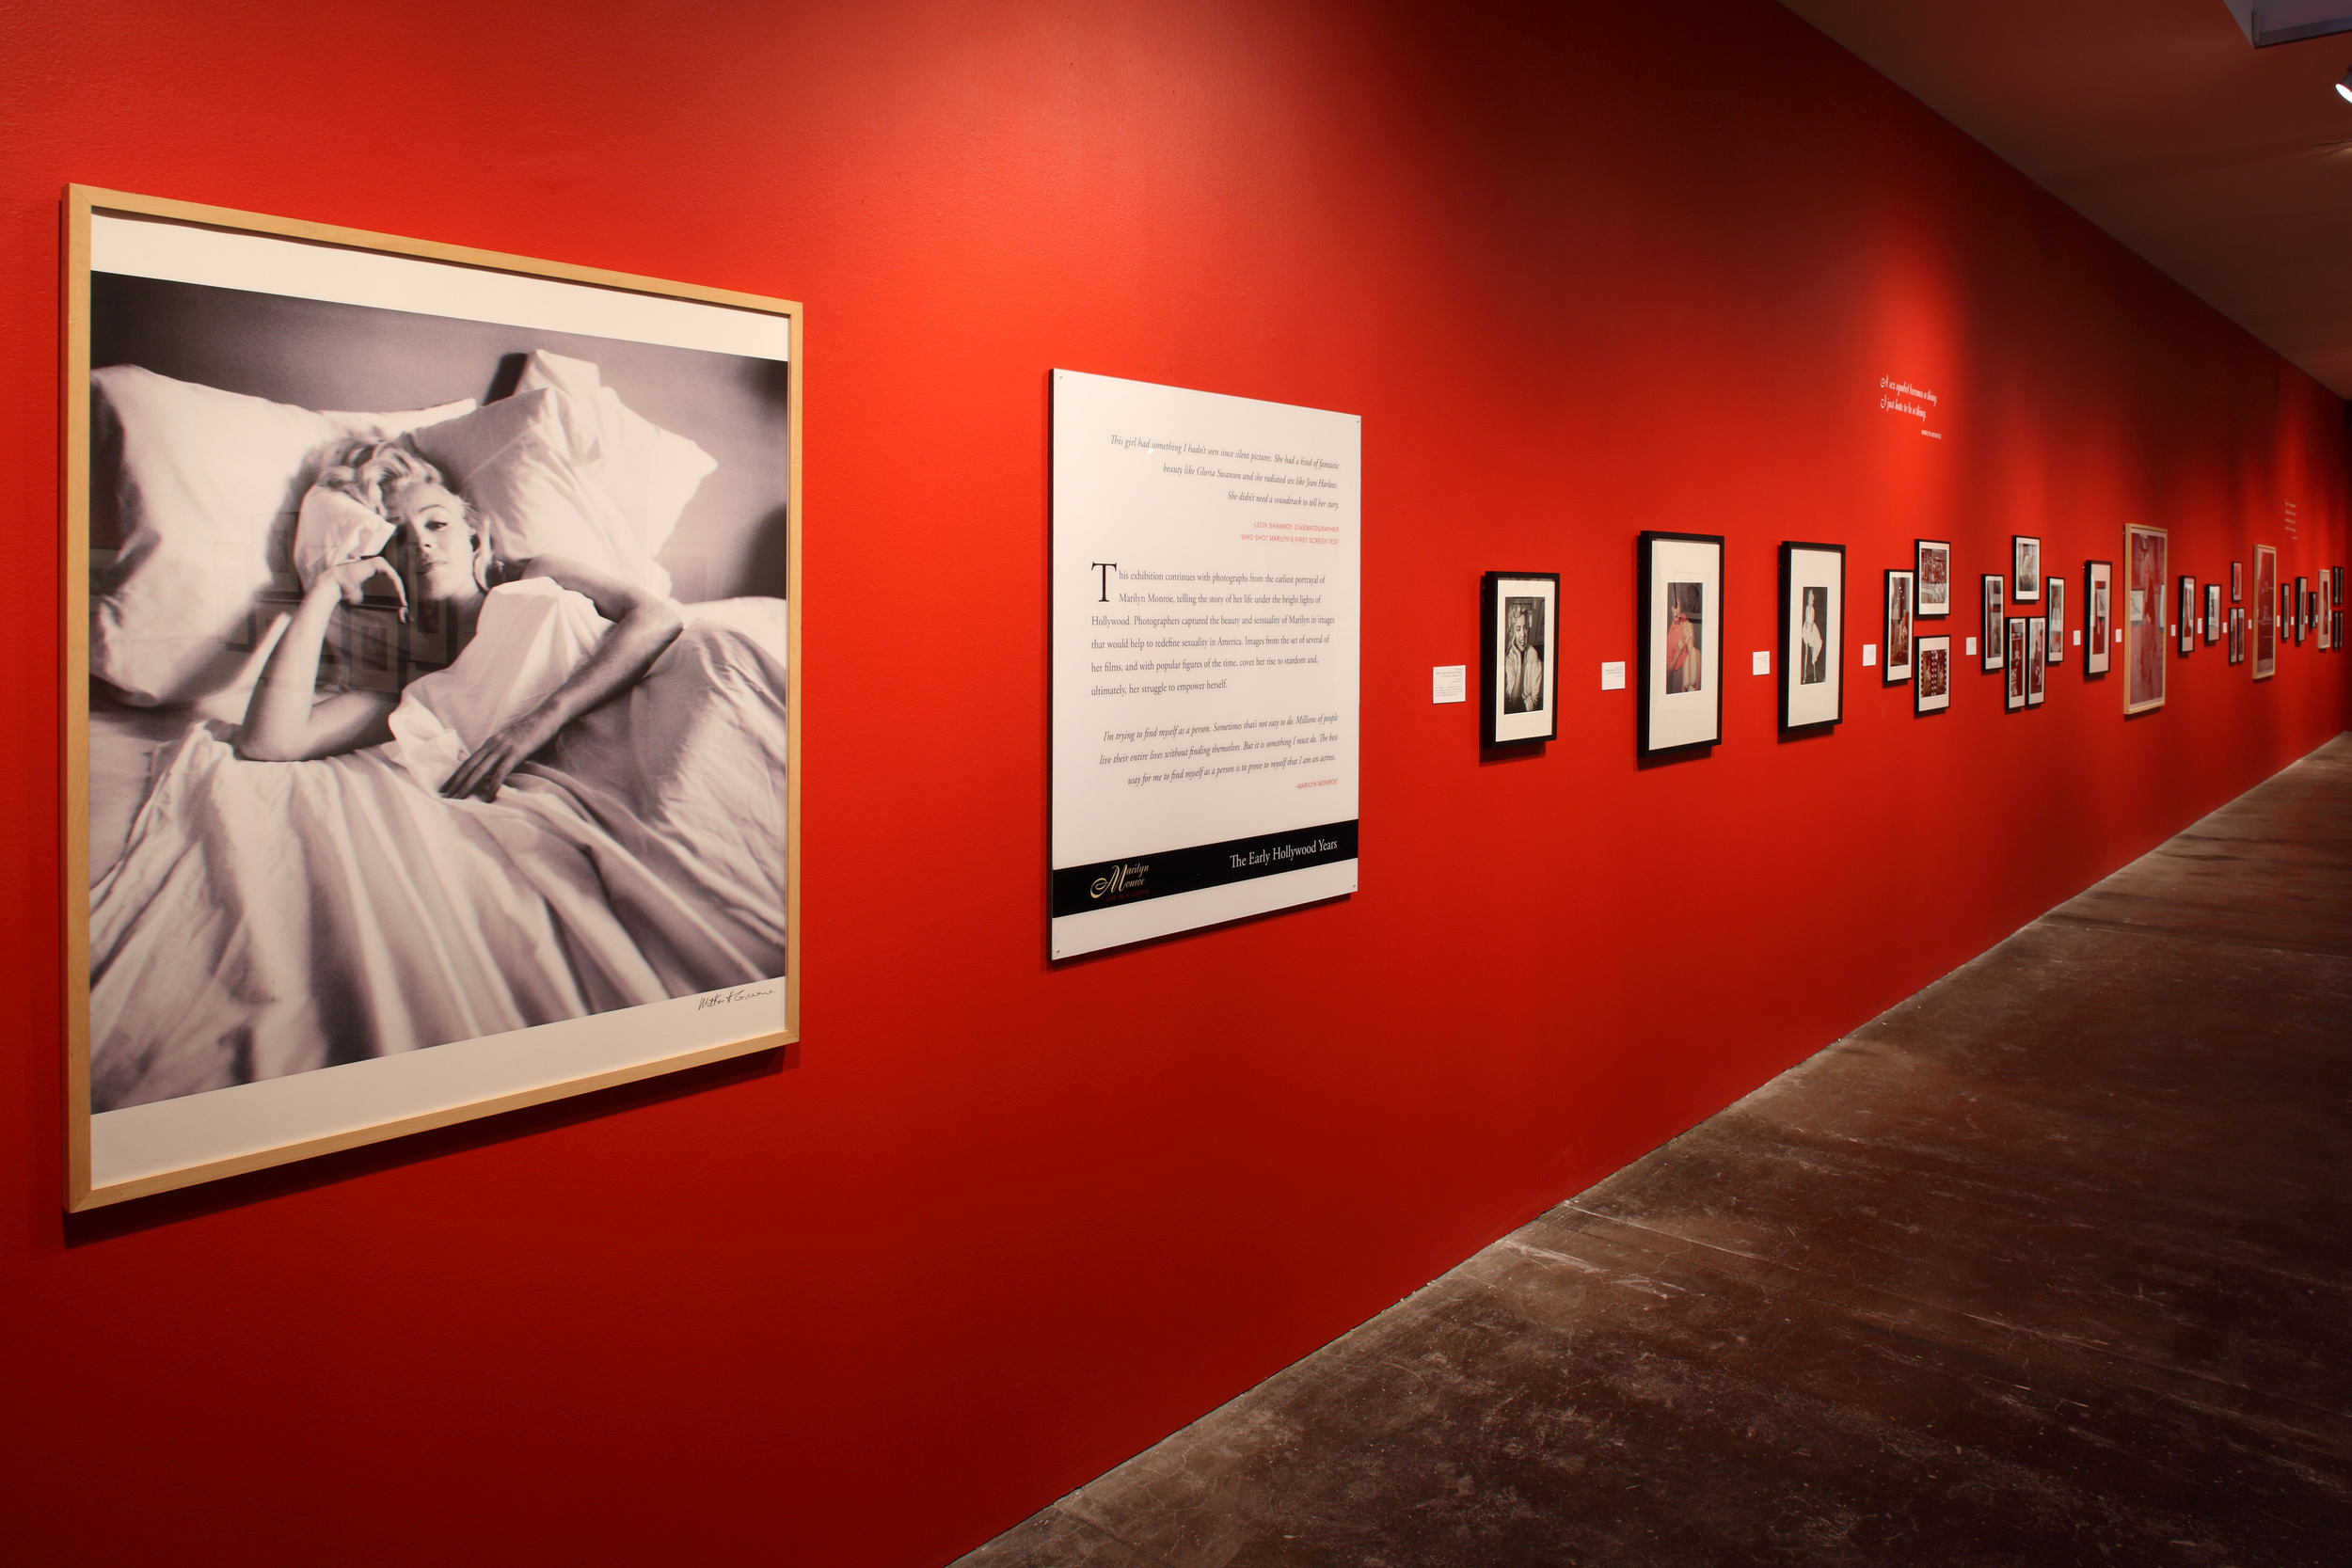 Marilyn Monroe - Life as a Legend at The Andy Warhol Museum, Pittsburgh, 2010 0007.JPG